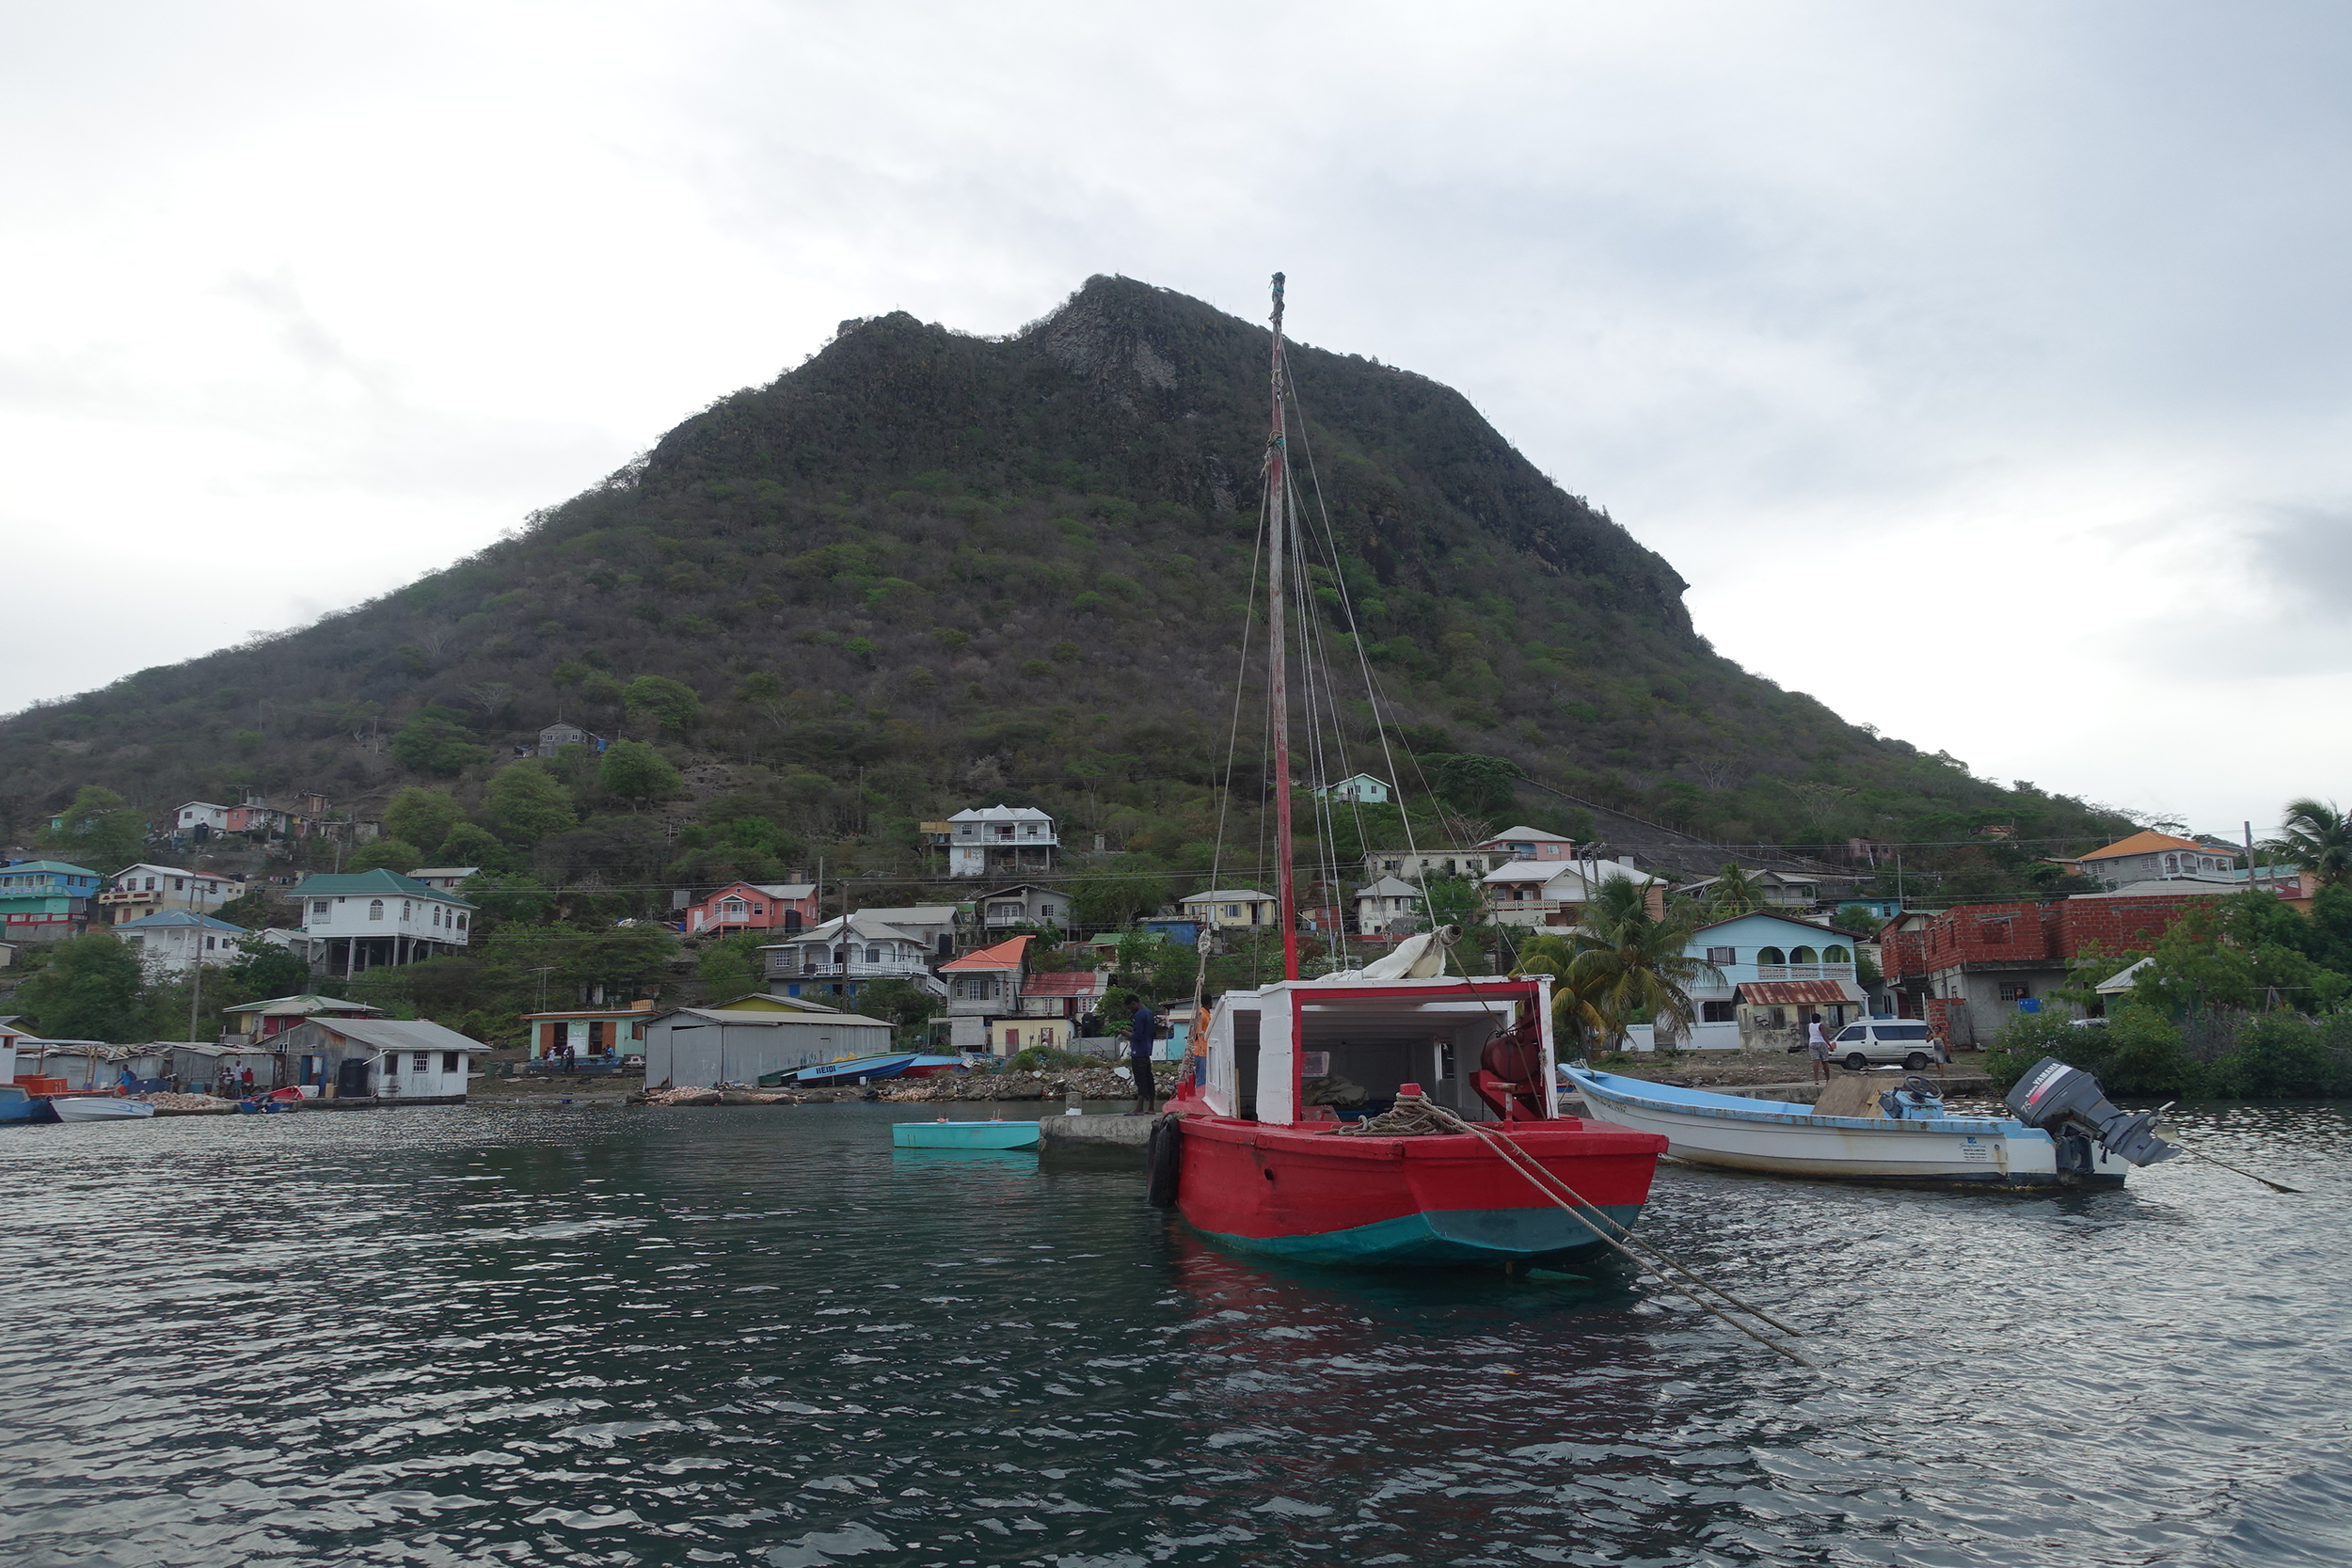 arriving at ashton, union island. Clifton is ten minutes drive from here along the coast.